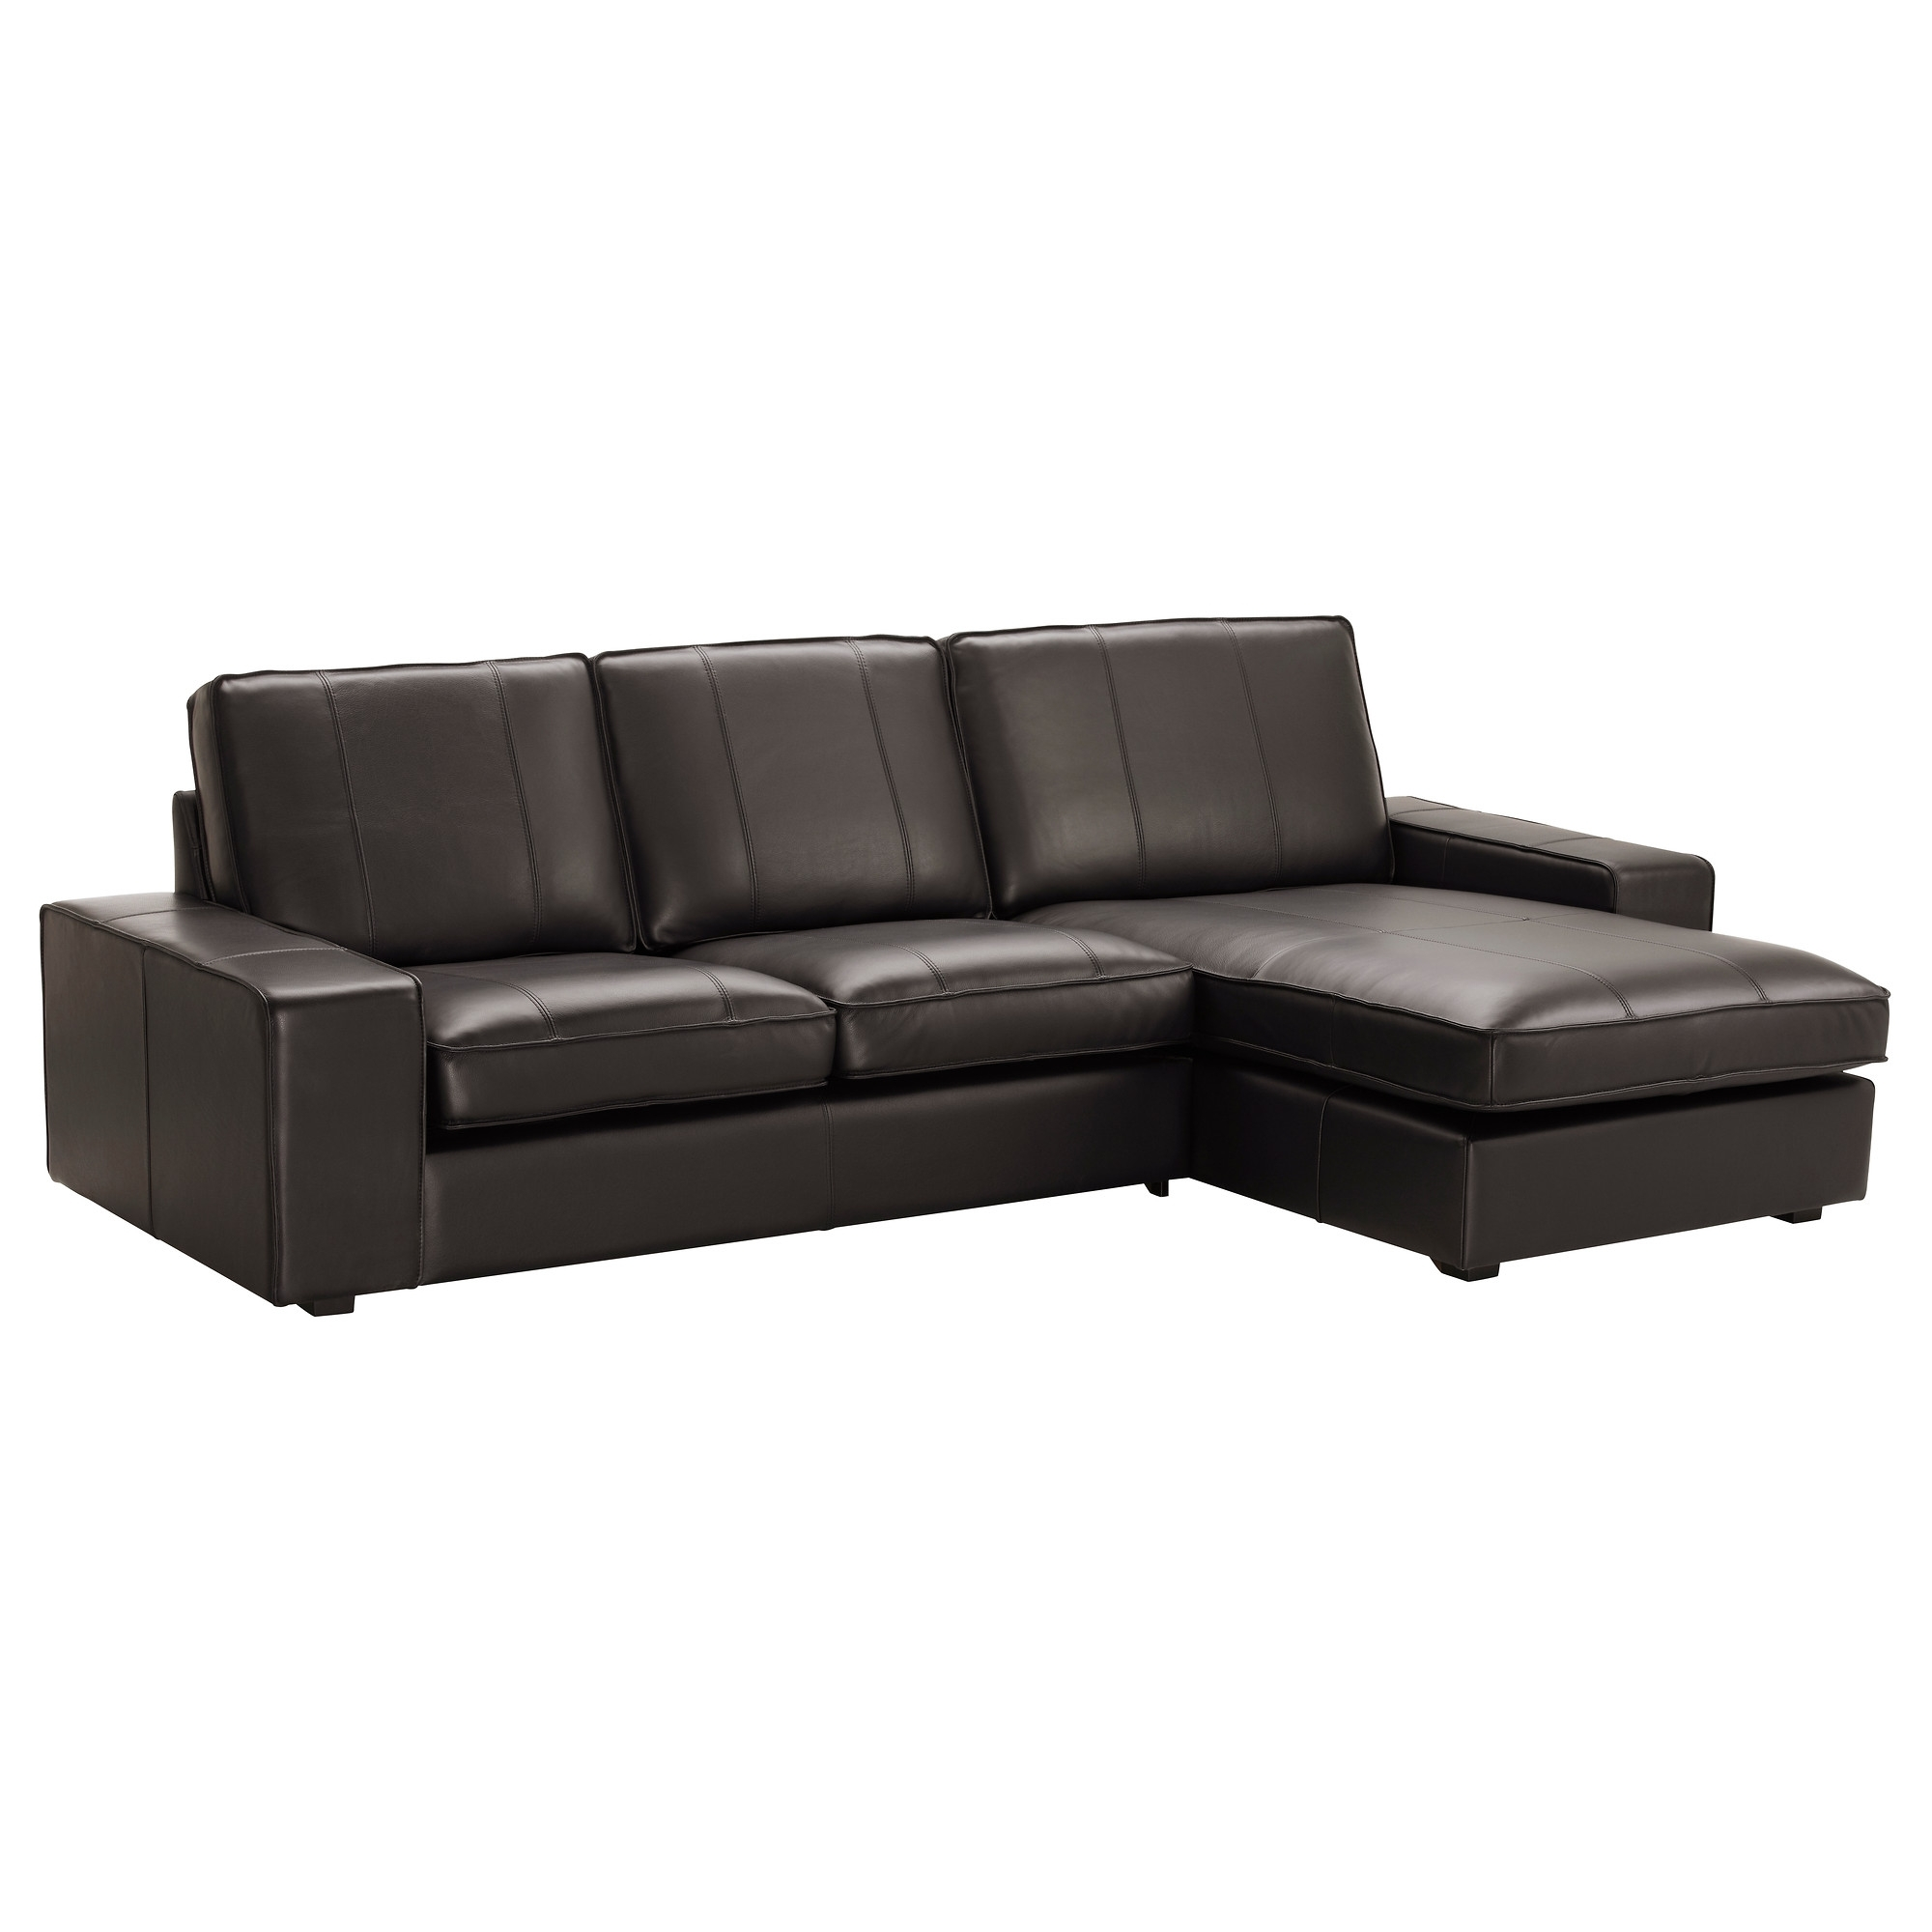 Recent Kivik Sofa – With Chaise/grann/bomstad Black – Ikea Within Ikea Chaise Sofas (View 3 of 15)